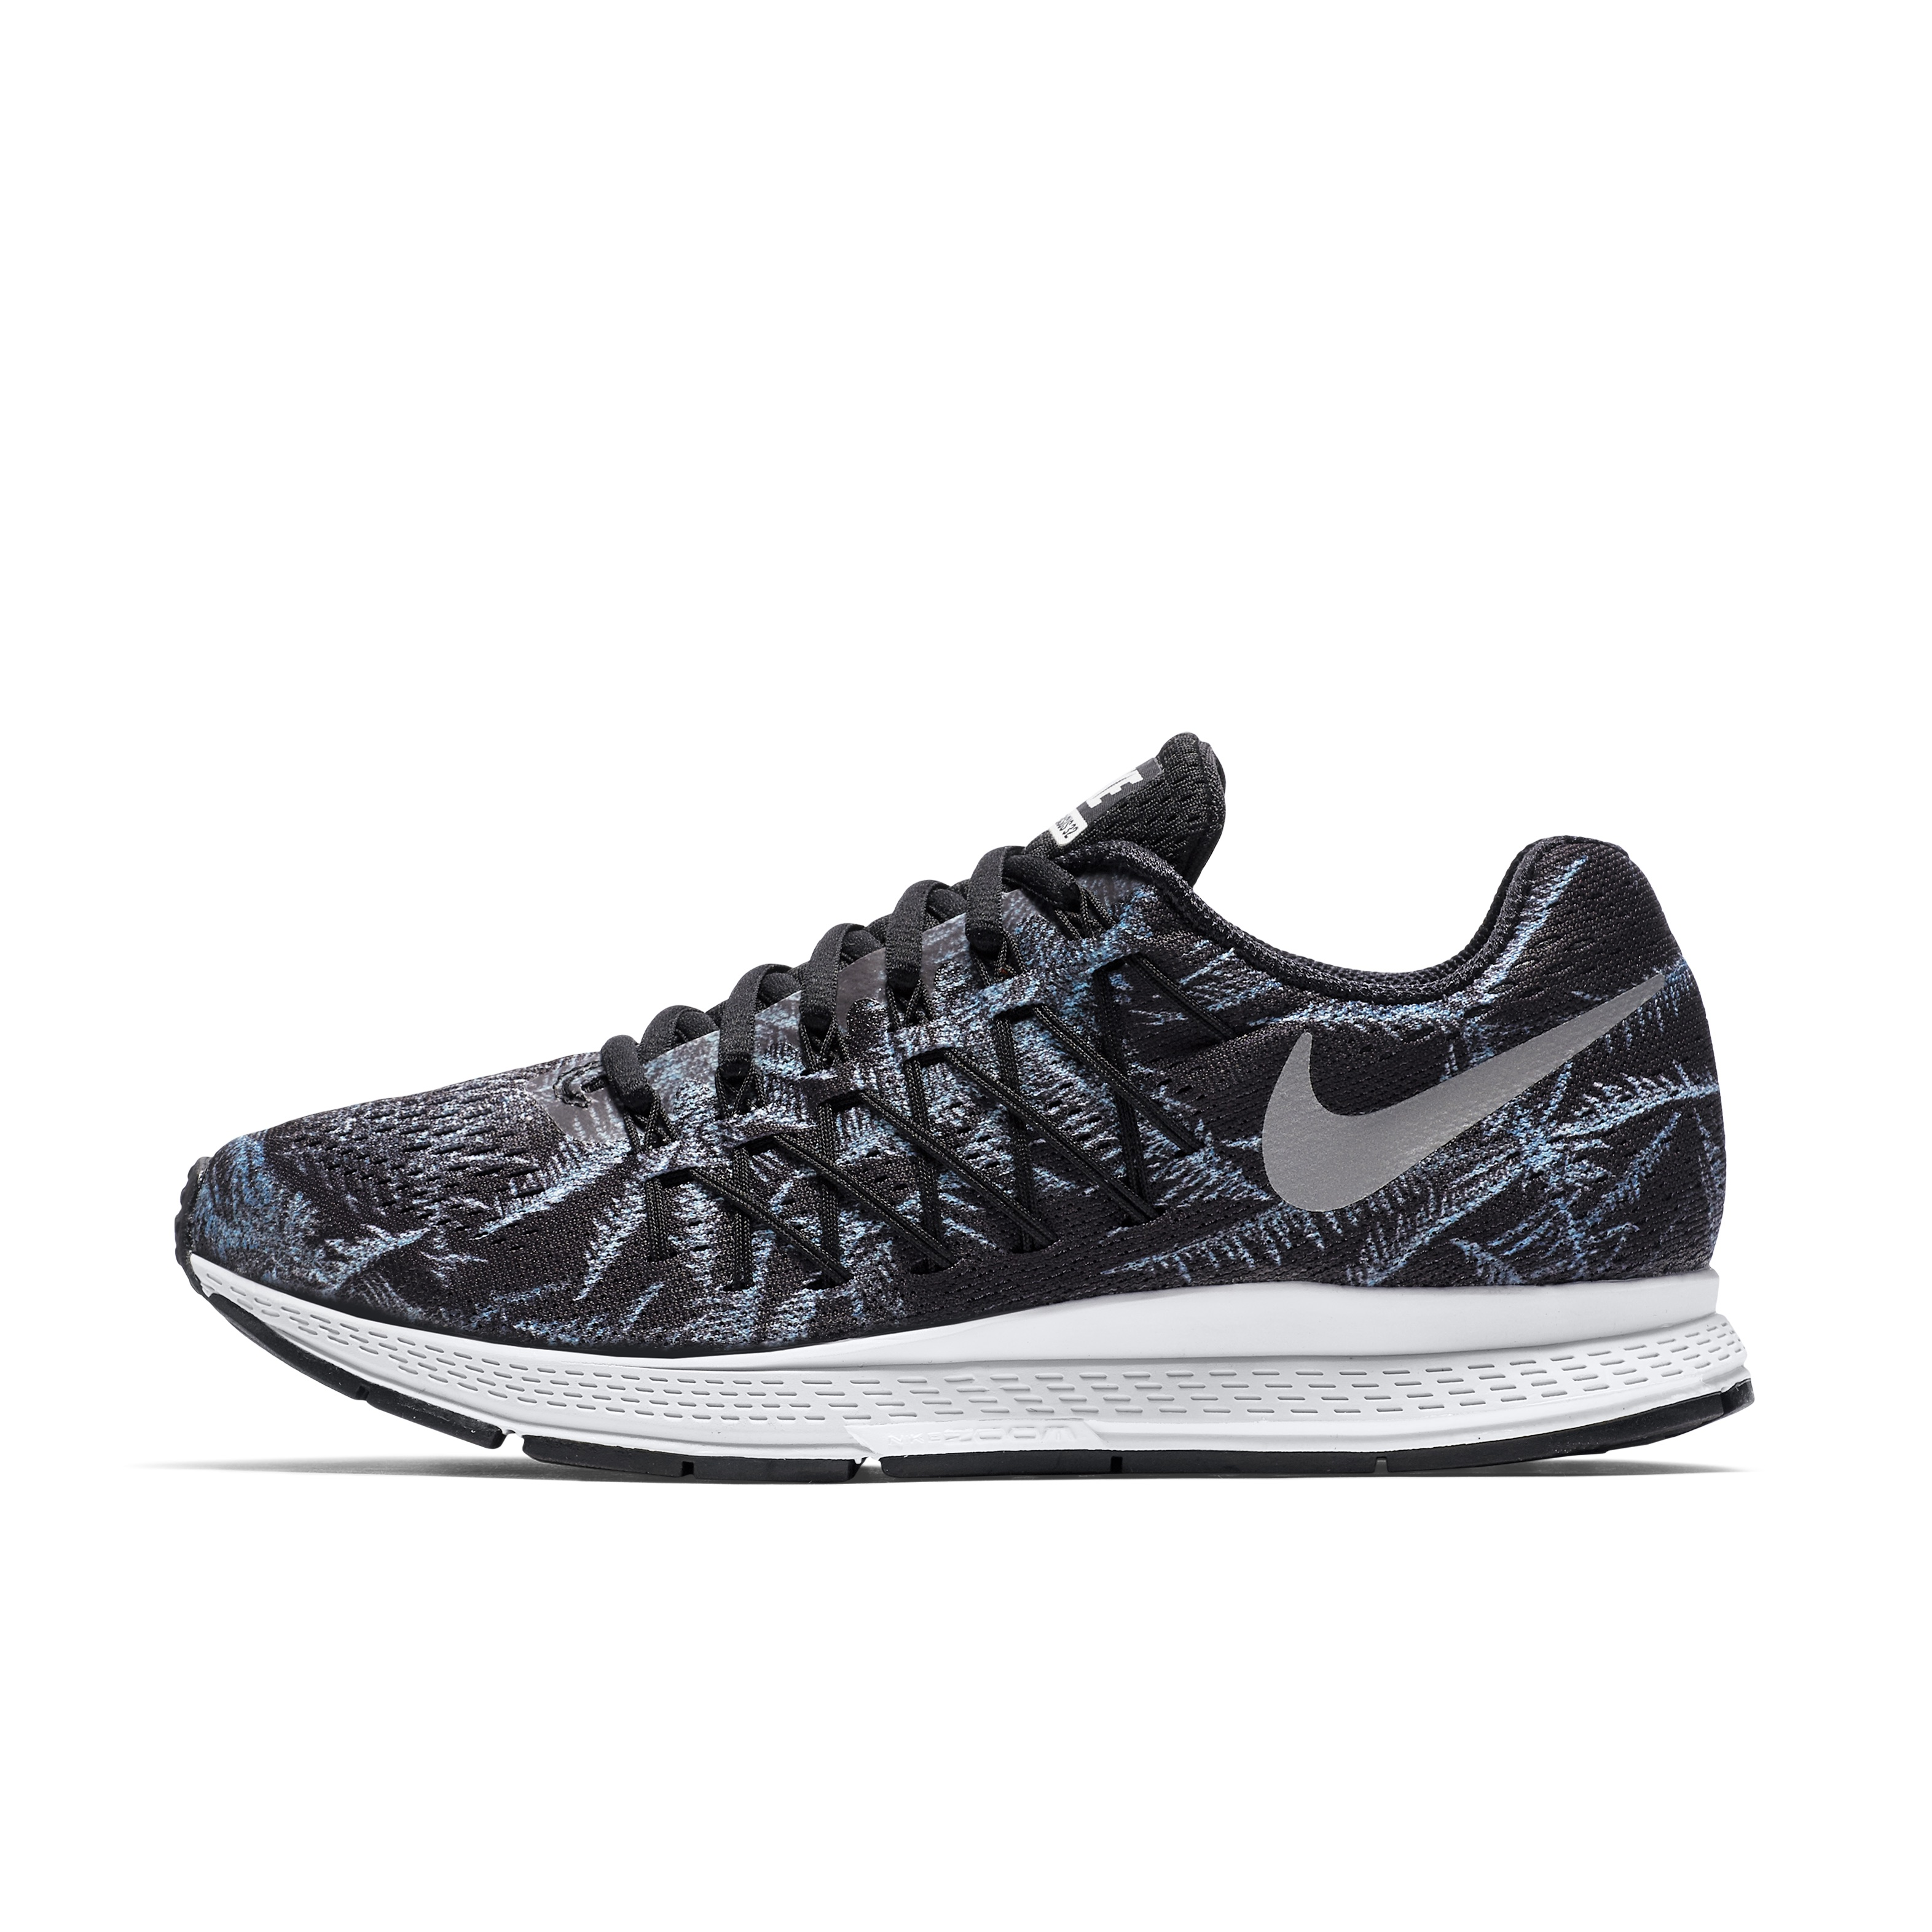 d62f7dcb179c ... the Nike Solstice Pack s Northern Hemisphere edition